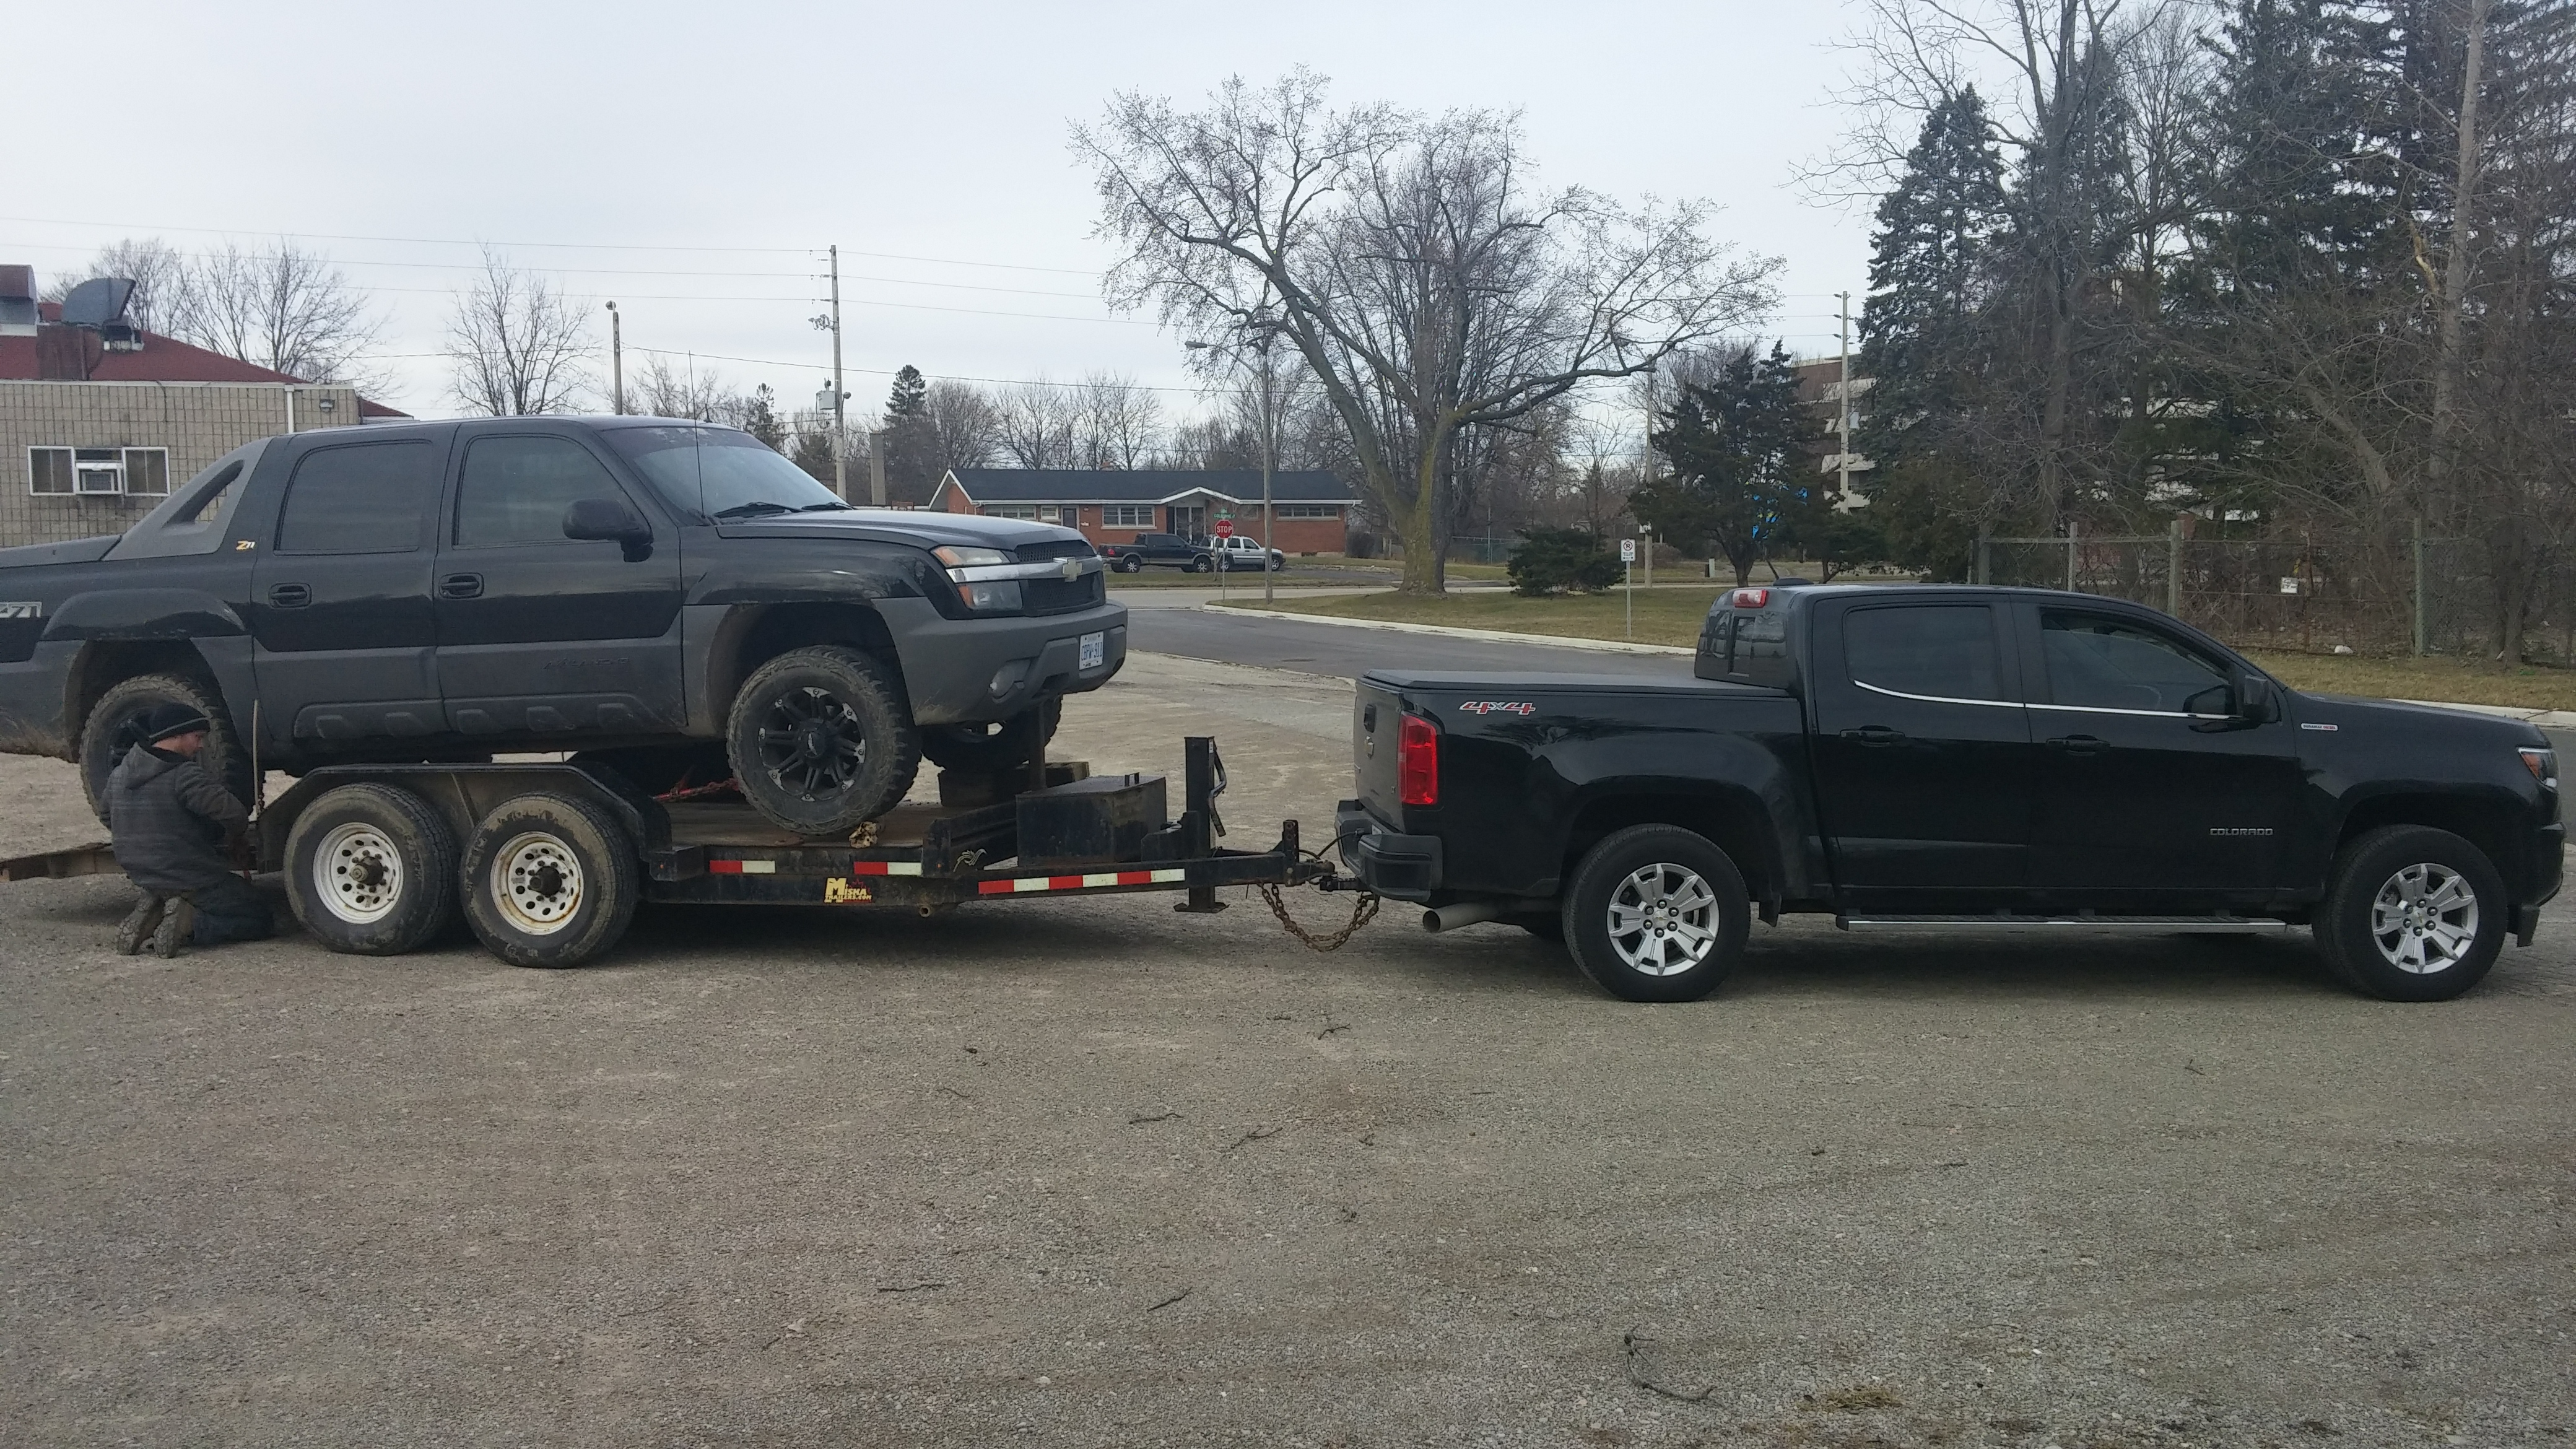 Towing 7000lbs